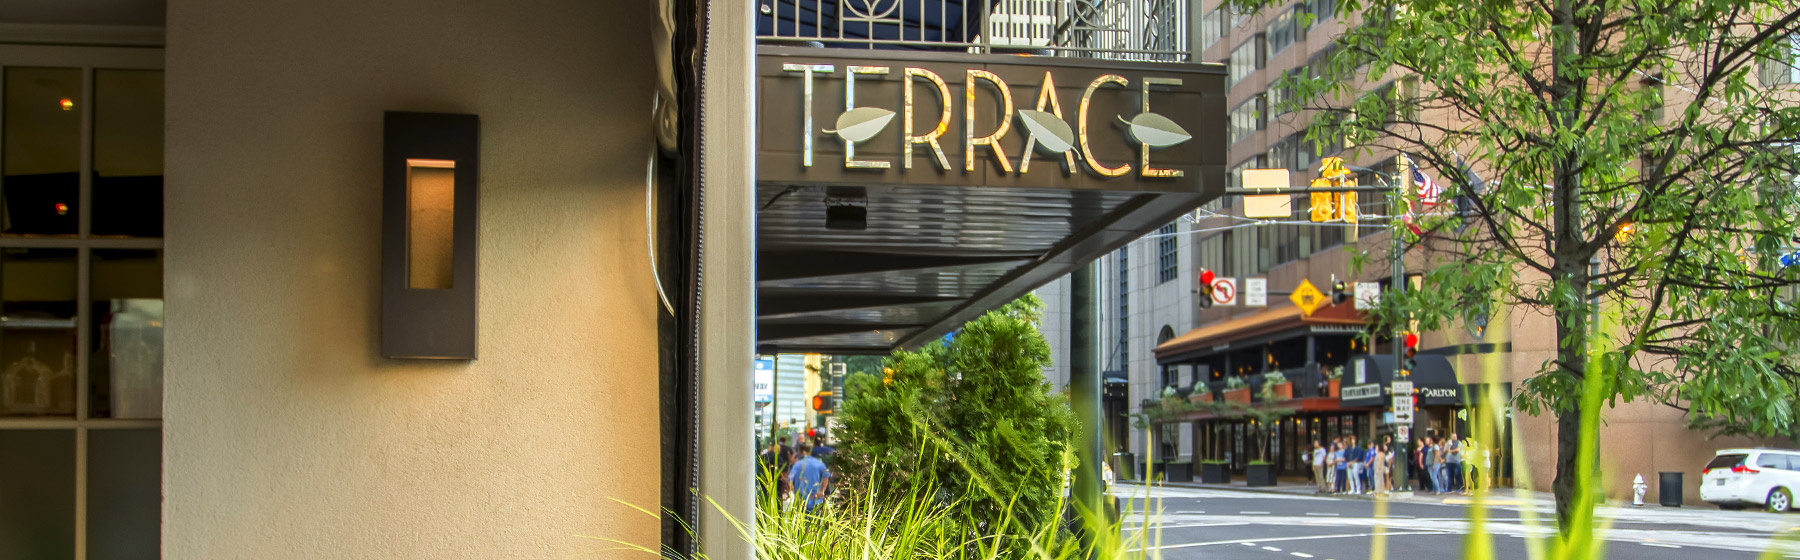 Terrace Bistro and Lounge Offers at Our Hotel in Atlanta